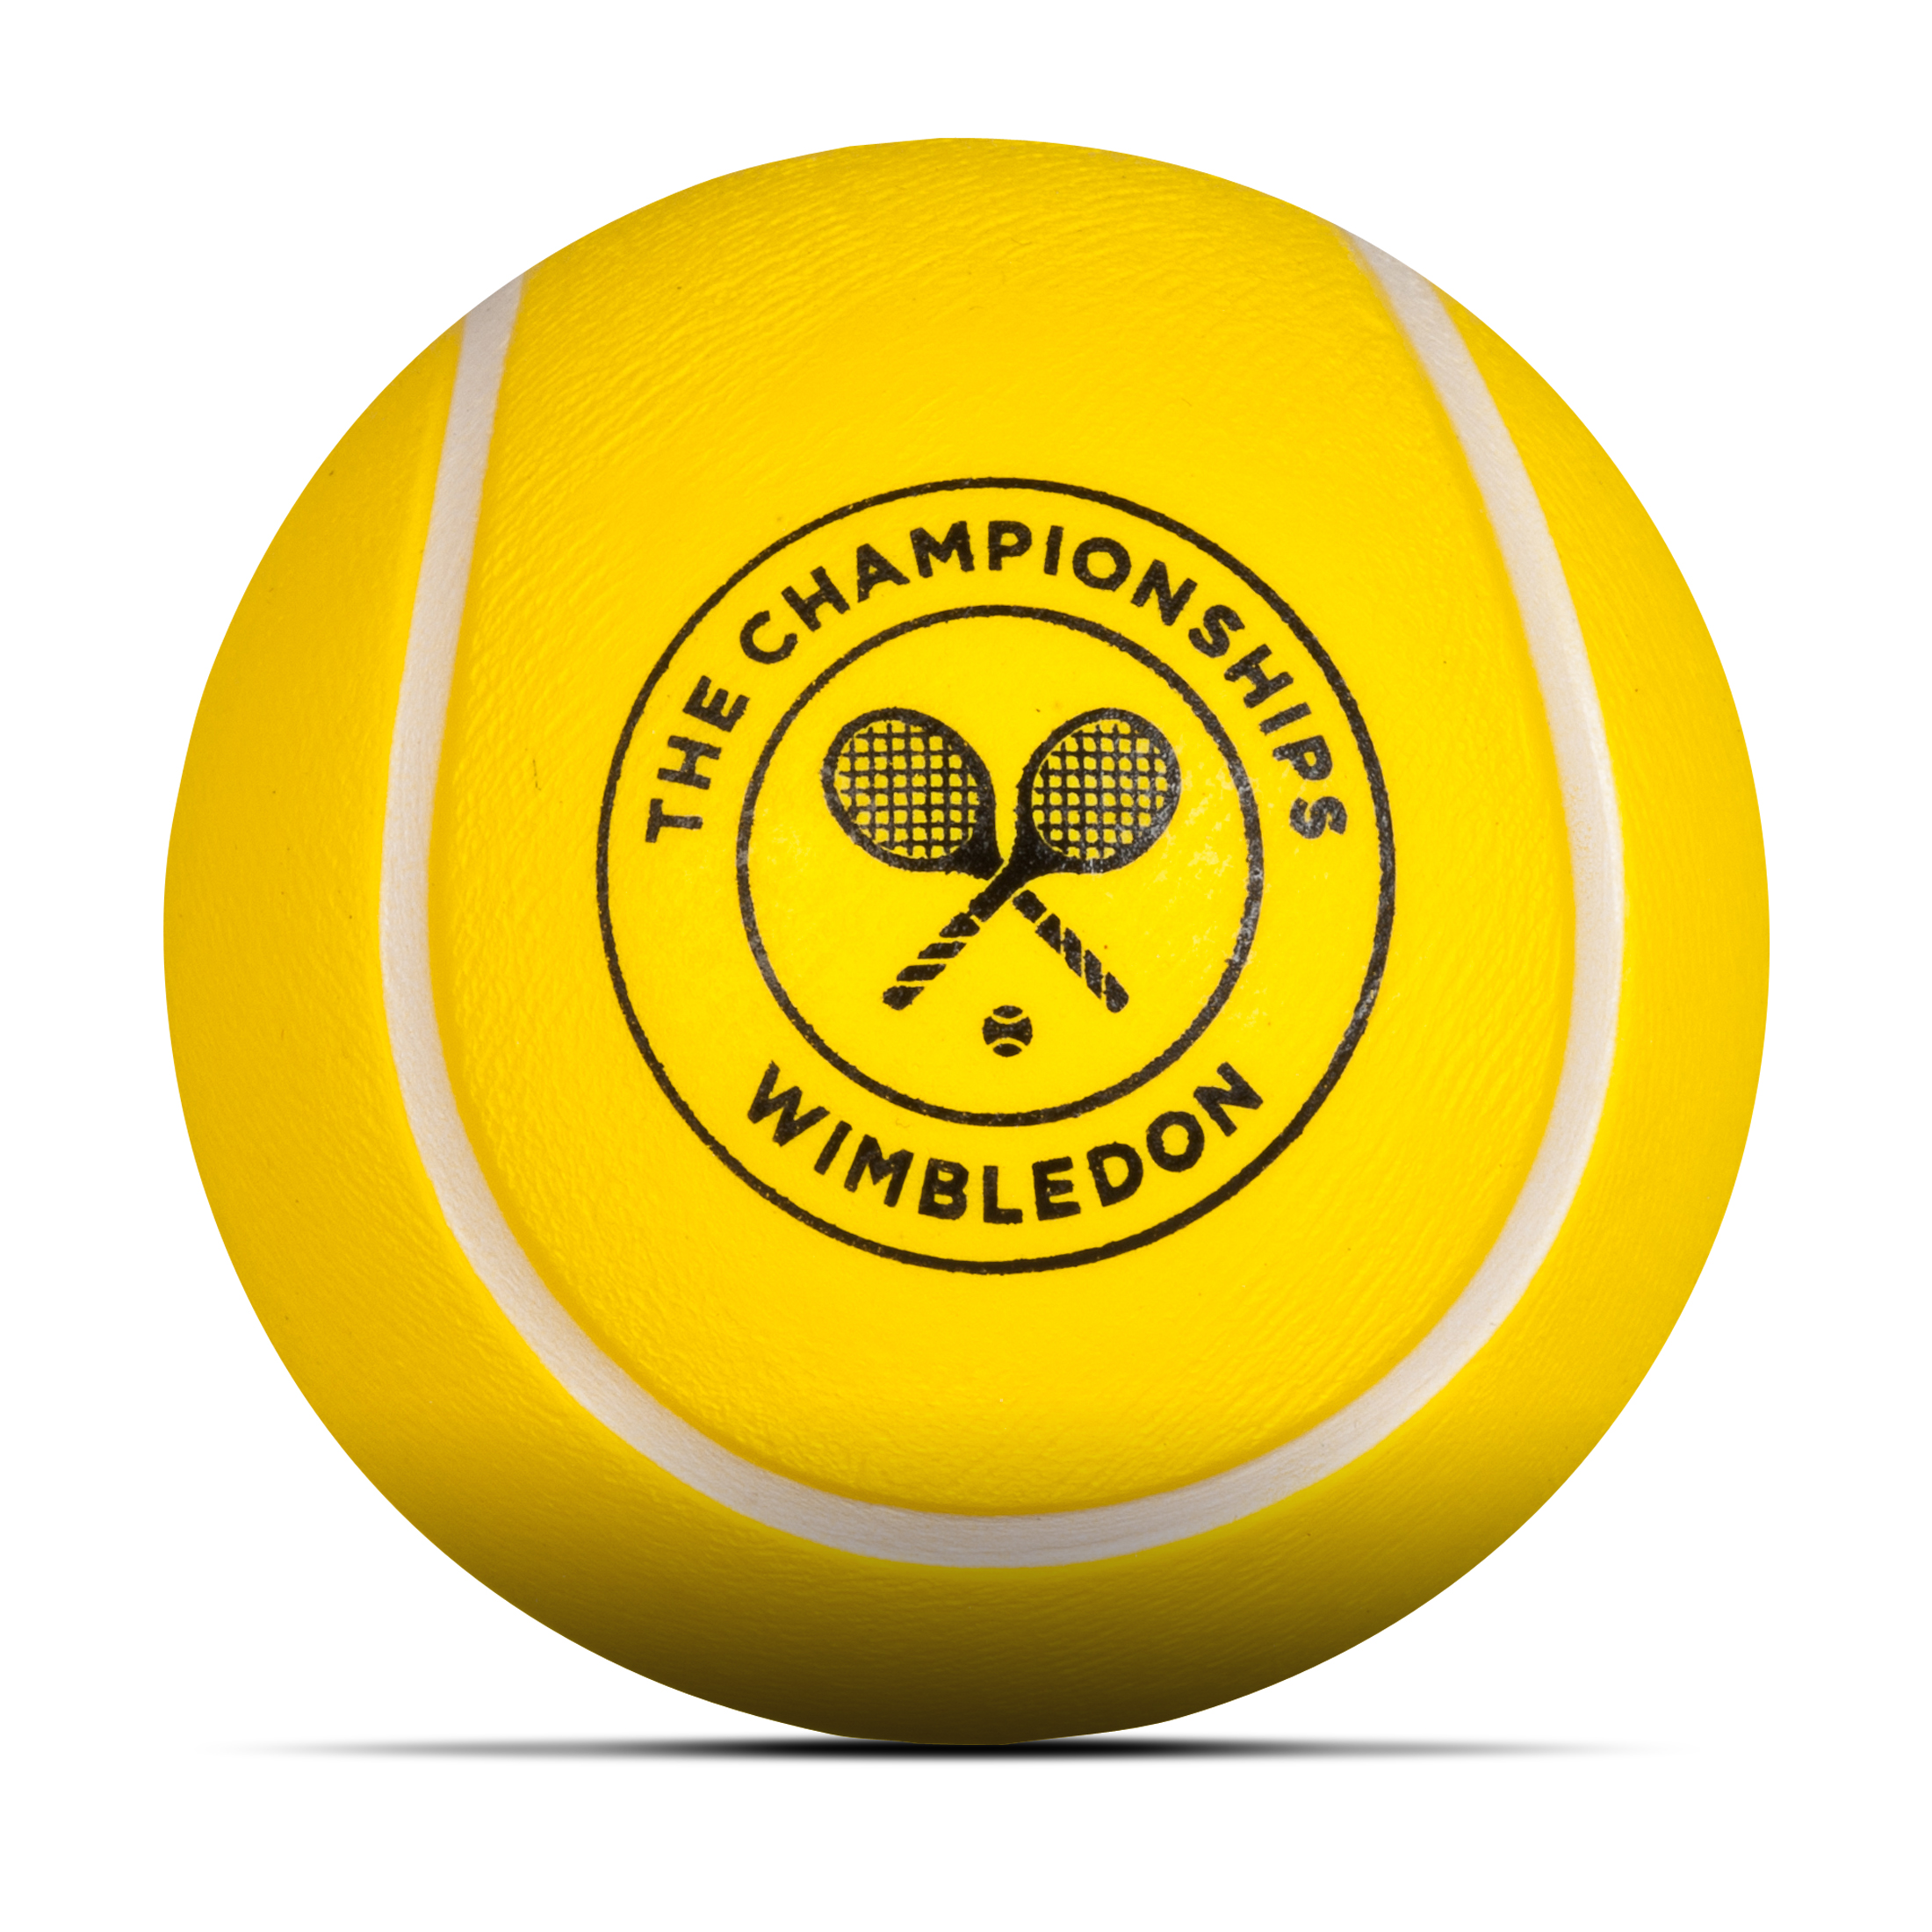 Wimbledon Stress Ball